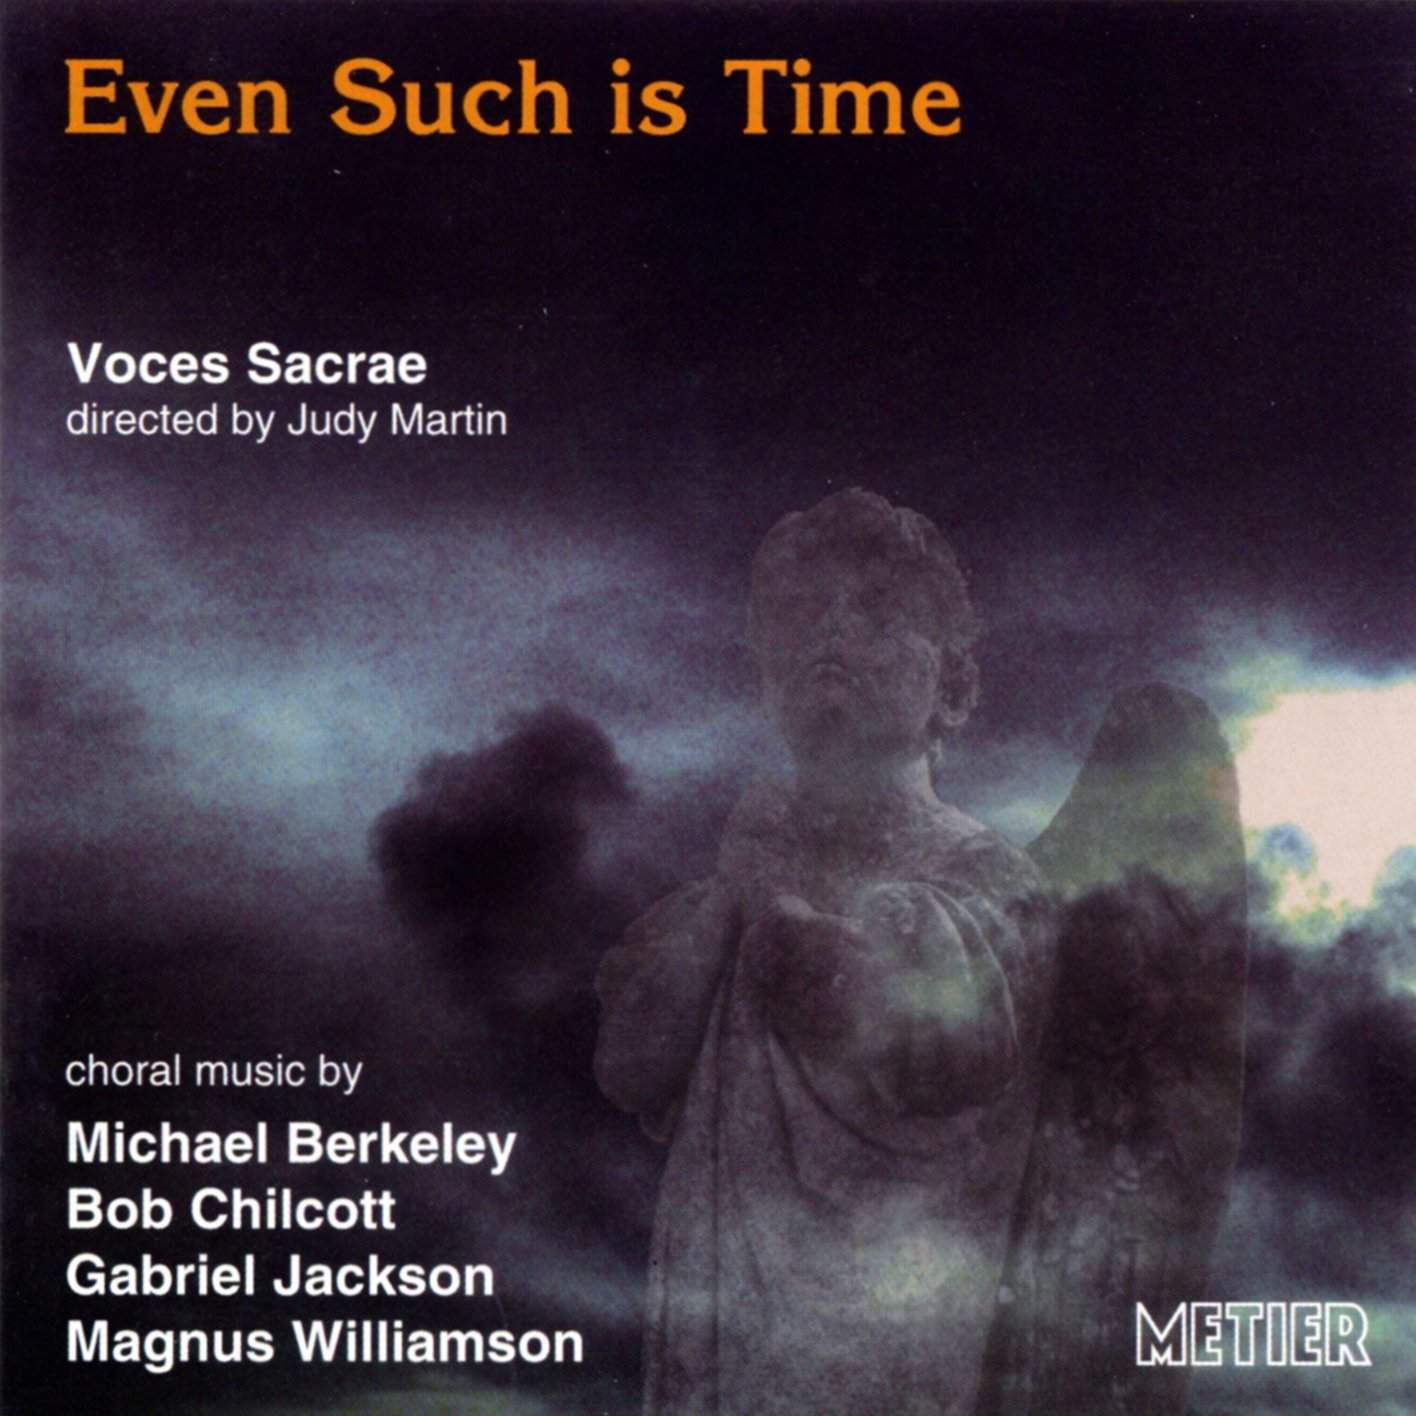 Even Such Is Time  British Choral Music  Divine Art